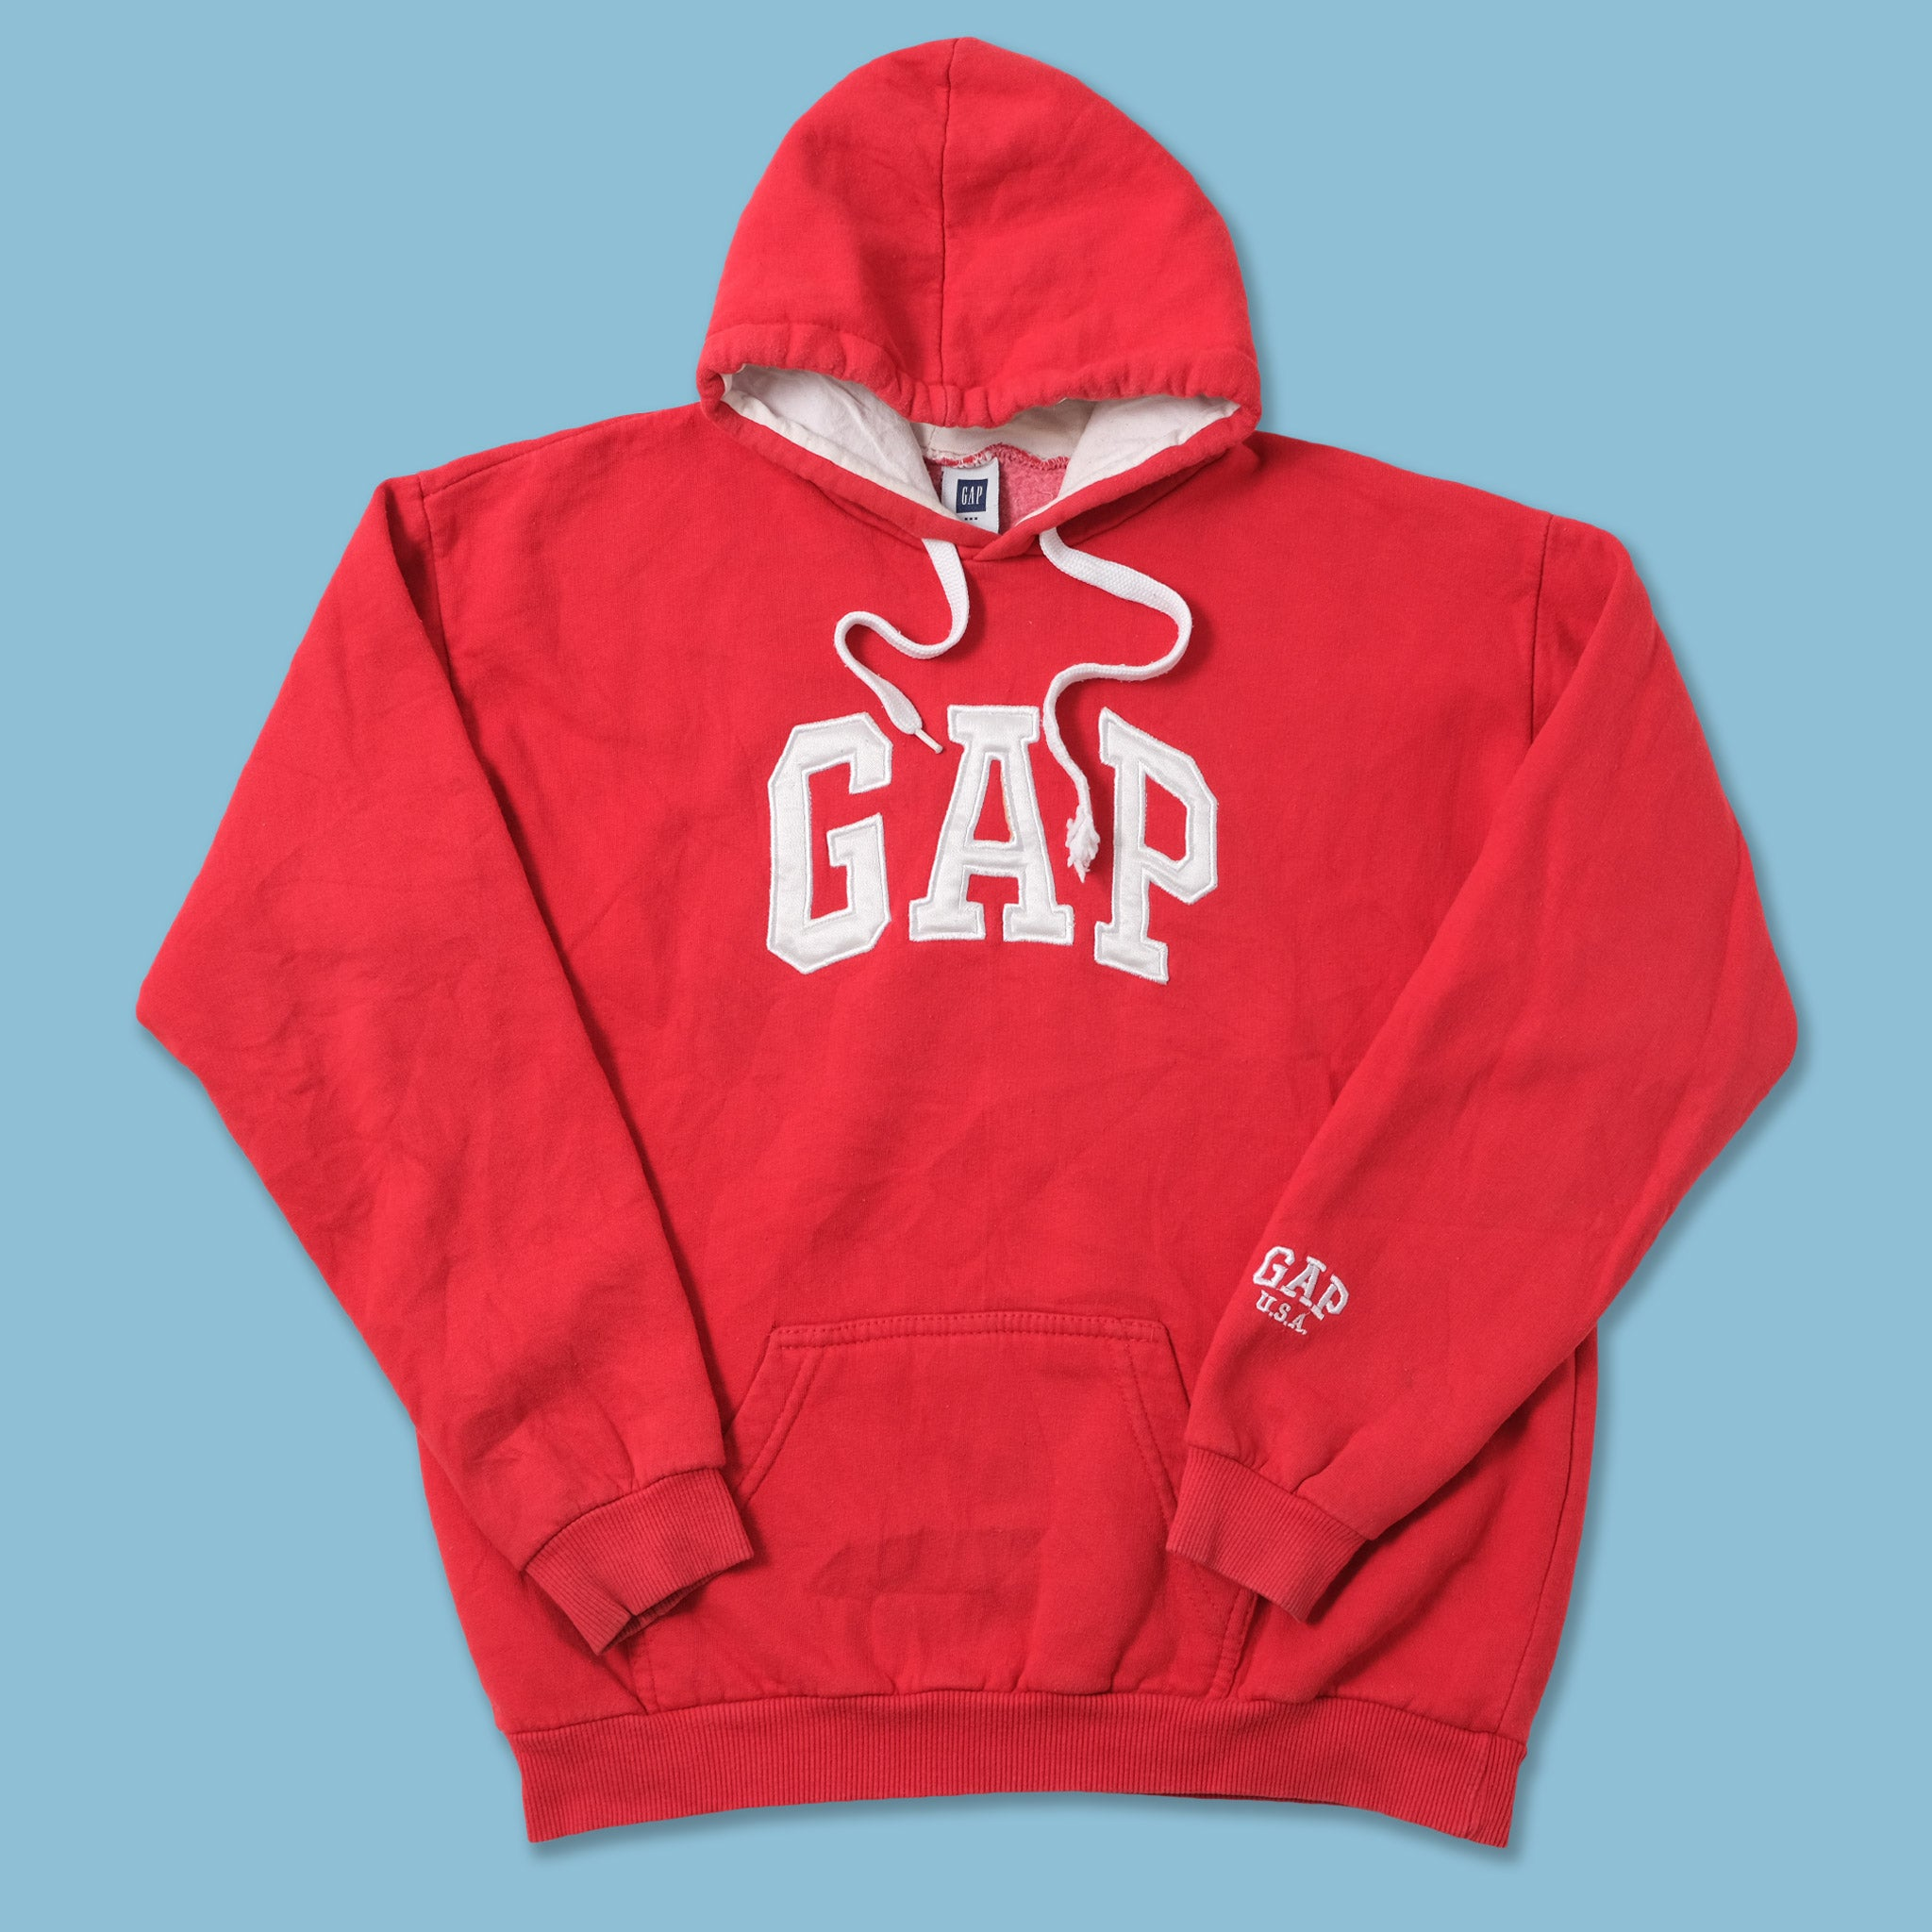 Vintage Gap Hoody Small / Medium